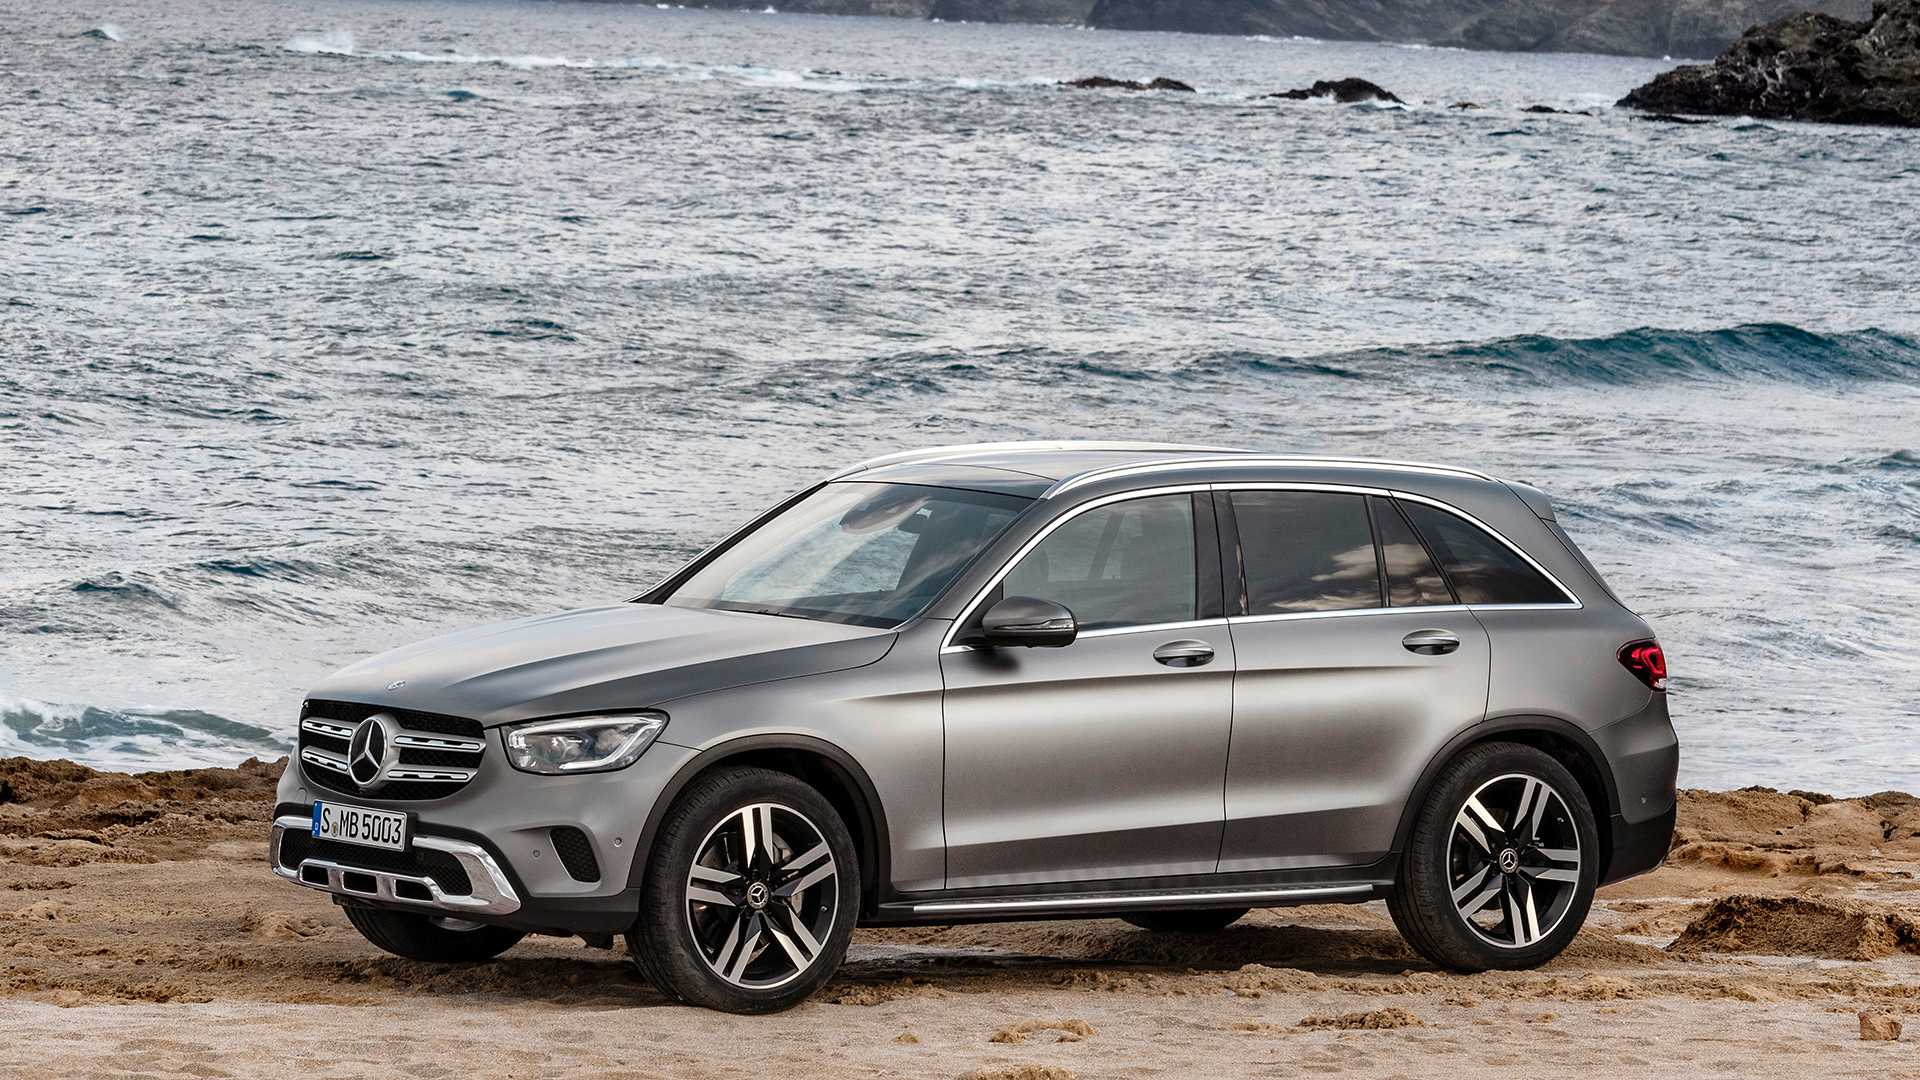 mercedes-benz-glc-2019 (4).jpg